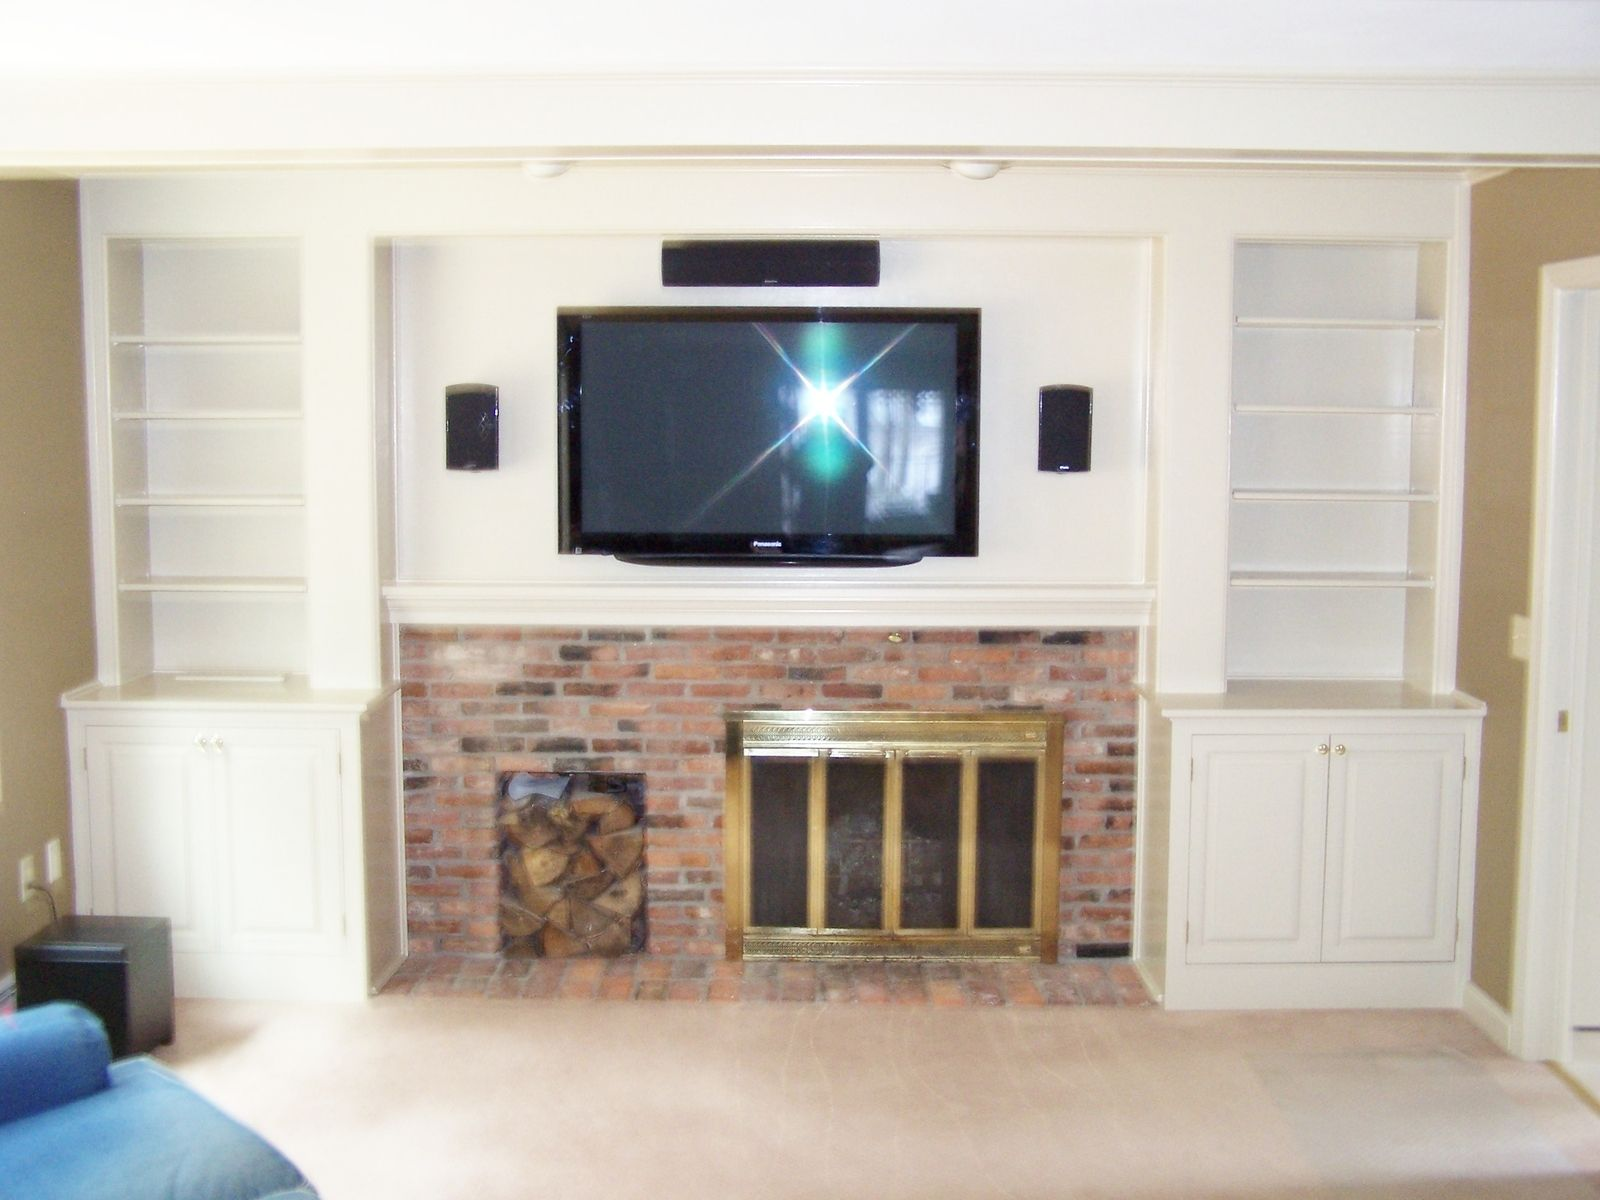 Custom built to fit around the existing fireplace. The electronic components were installed in the RH cabinet with an oak vent on the top. The shelves…